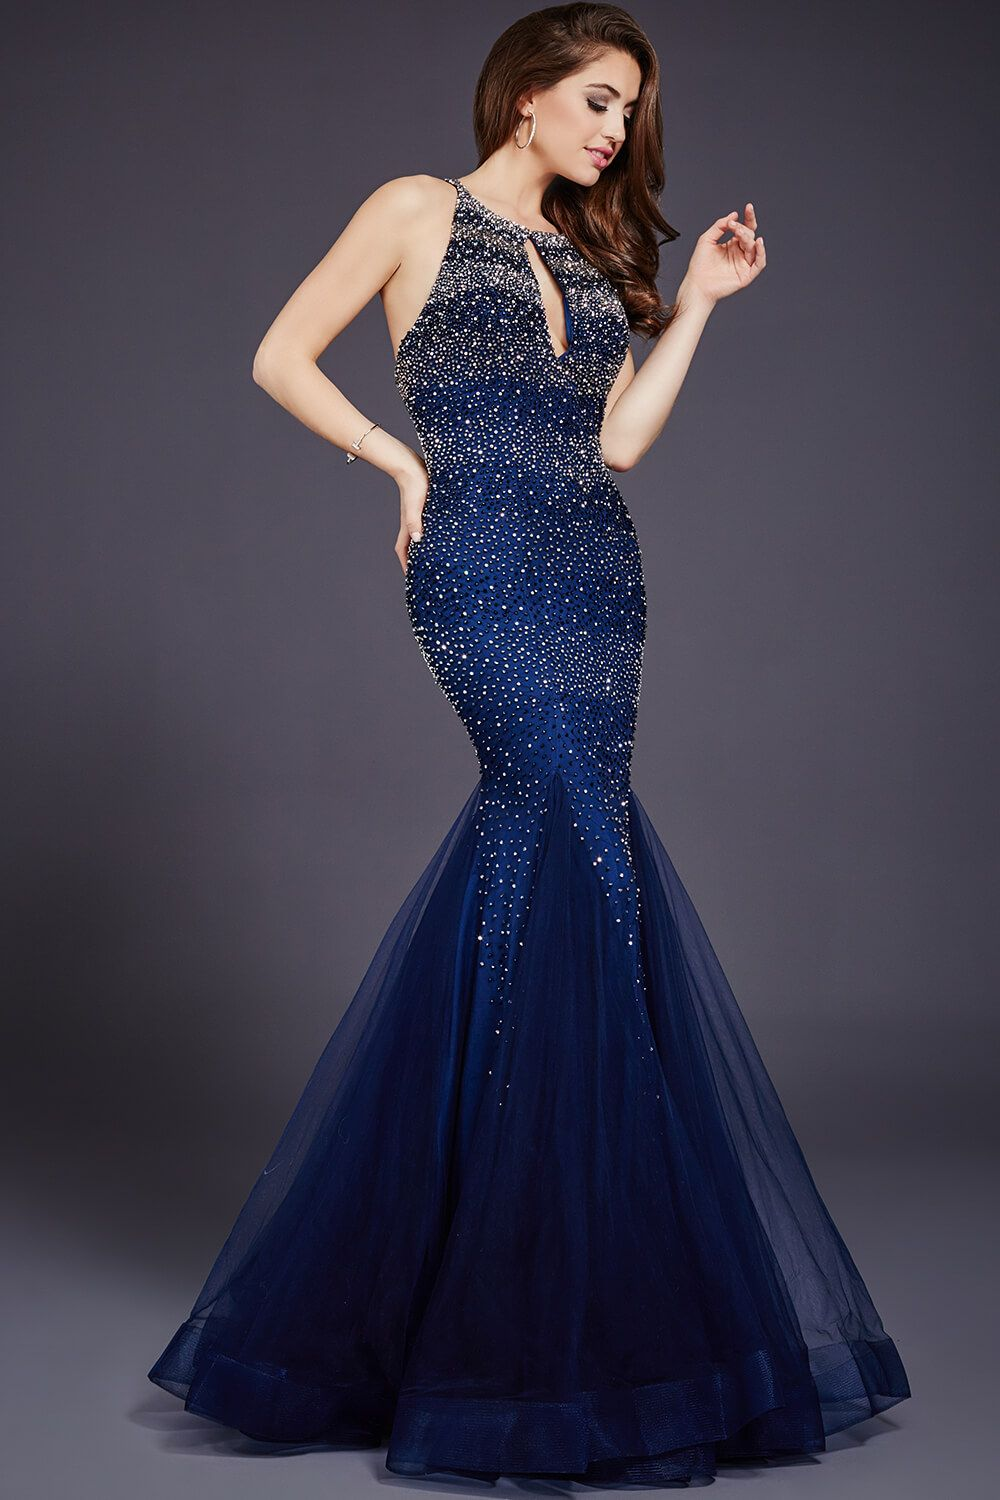 Dazzling sleeveless mermaid dress features a keyhole